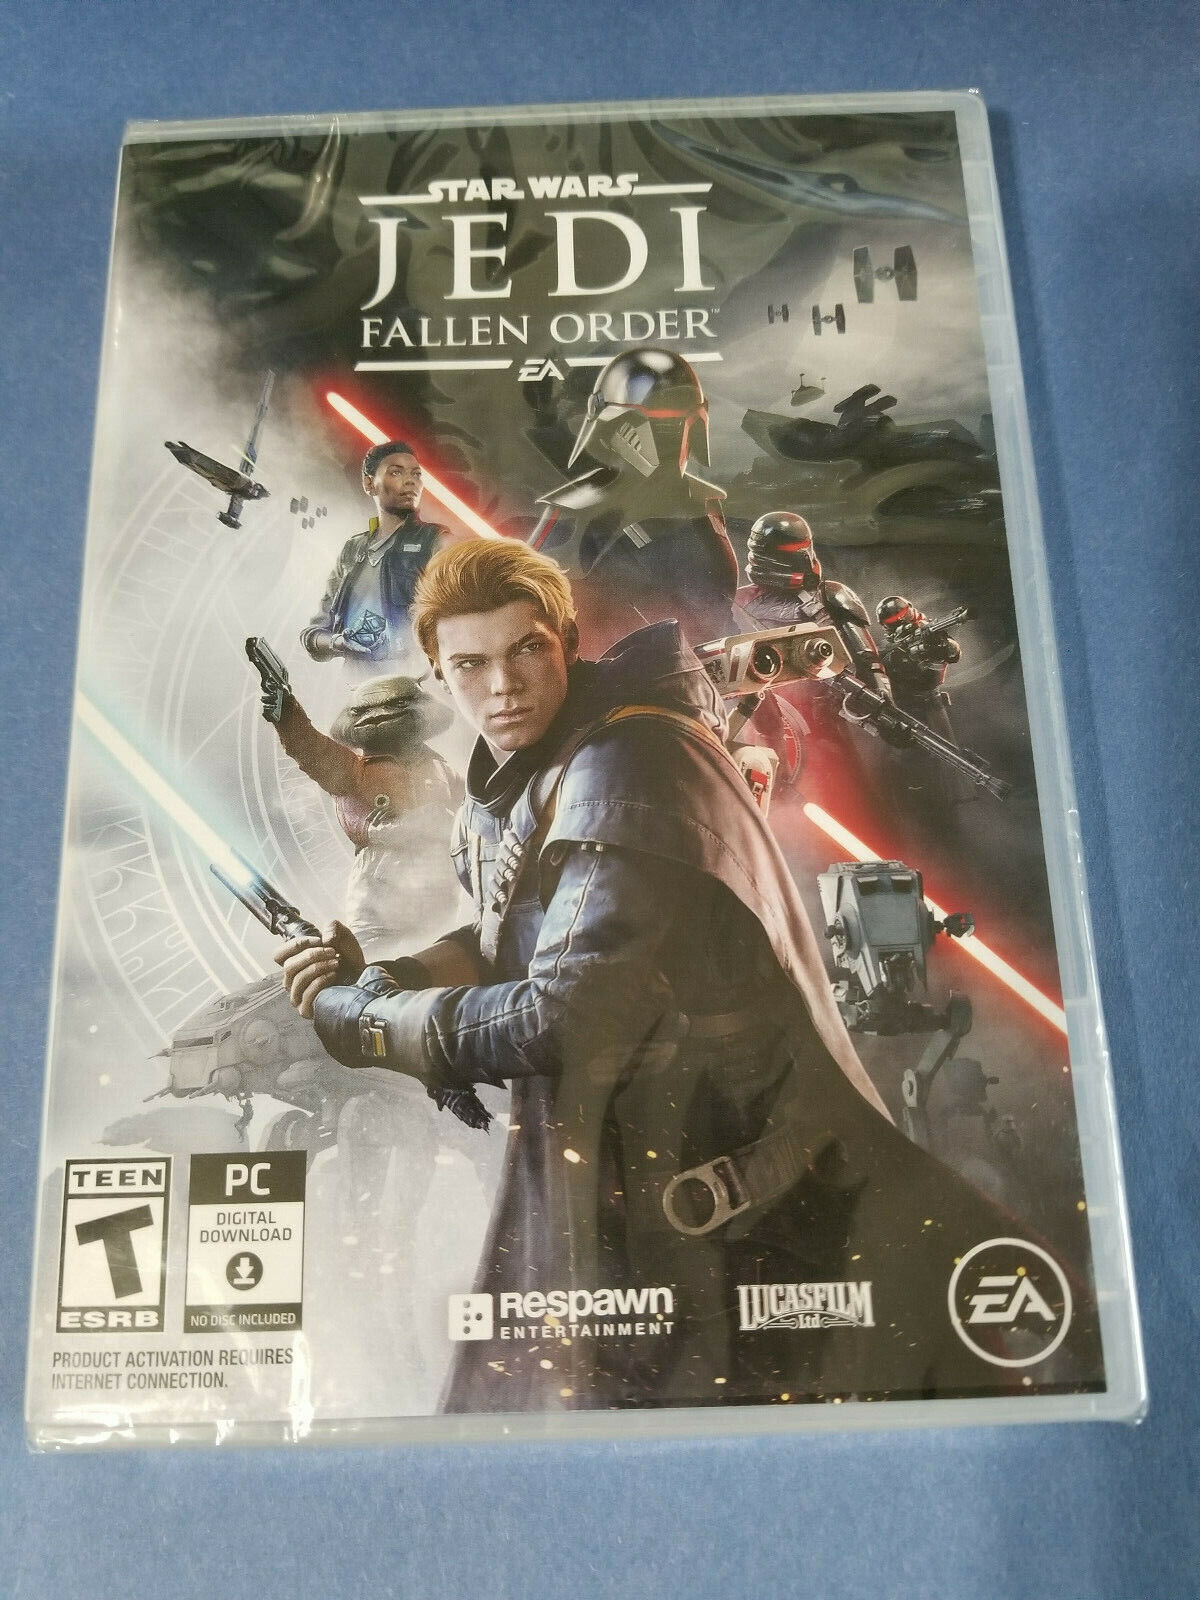 Computer Games - NEW - Star Wars: Jedi Fallen Order (PC Windows) Computer Game - Free Shipping!